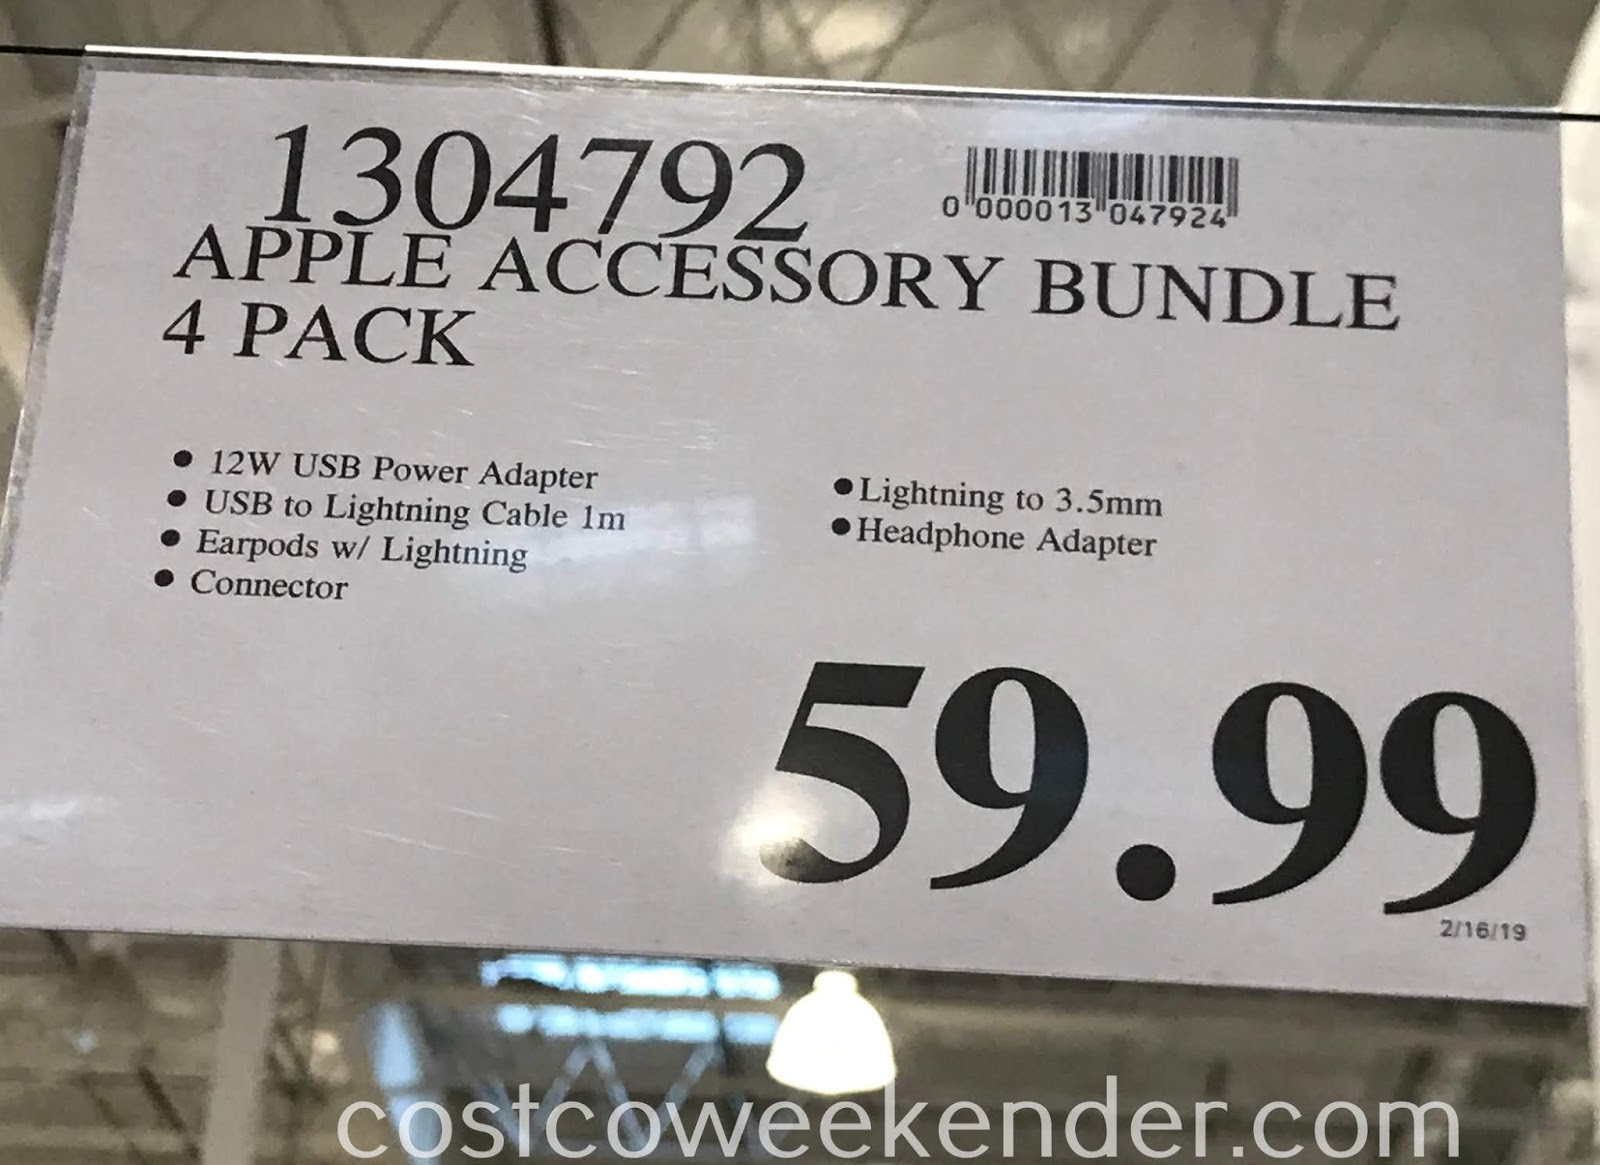 Deal for the Apple Accessory Bundle at Costco